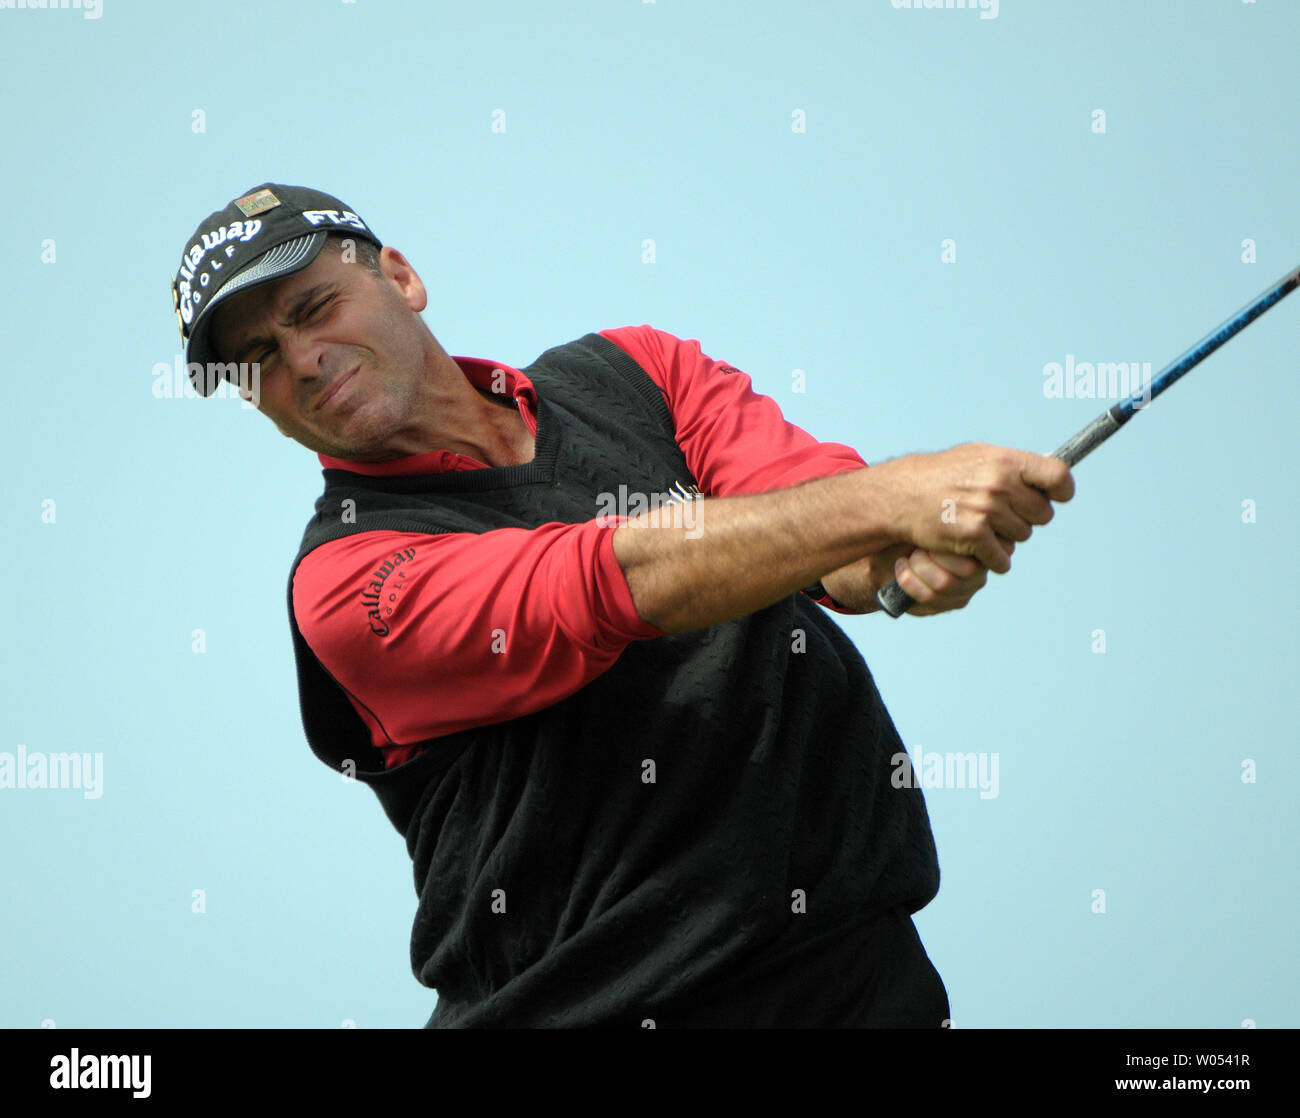 Rocco Mediate tees off of the 3rd hole during the playoff round at the US Open at Torrey Pines Golf Course in San Diego on June 16, 2008. Tiger Woods went on to beat Mediate to win the 108th US Open. (UPI Photo/Earl S. Cryer) Stock Photo